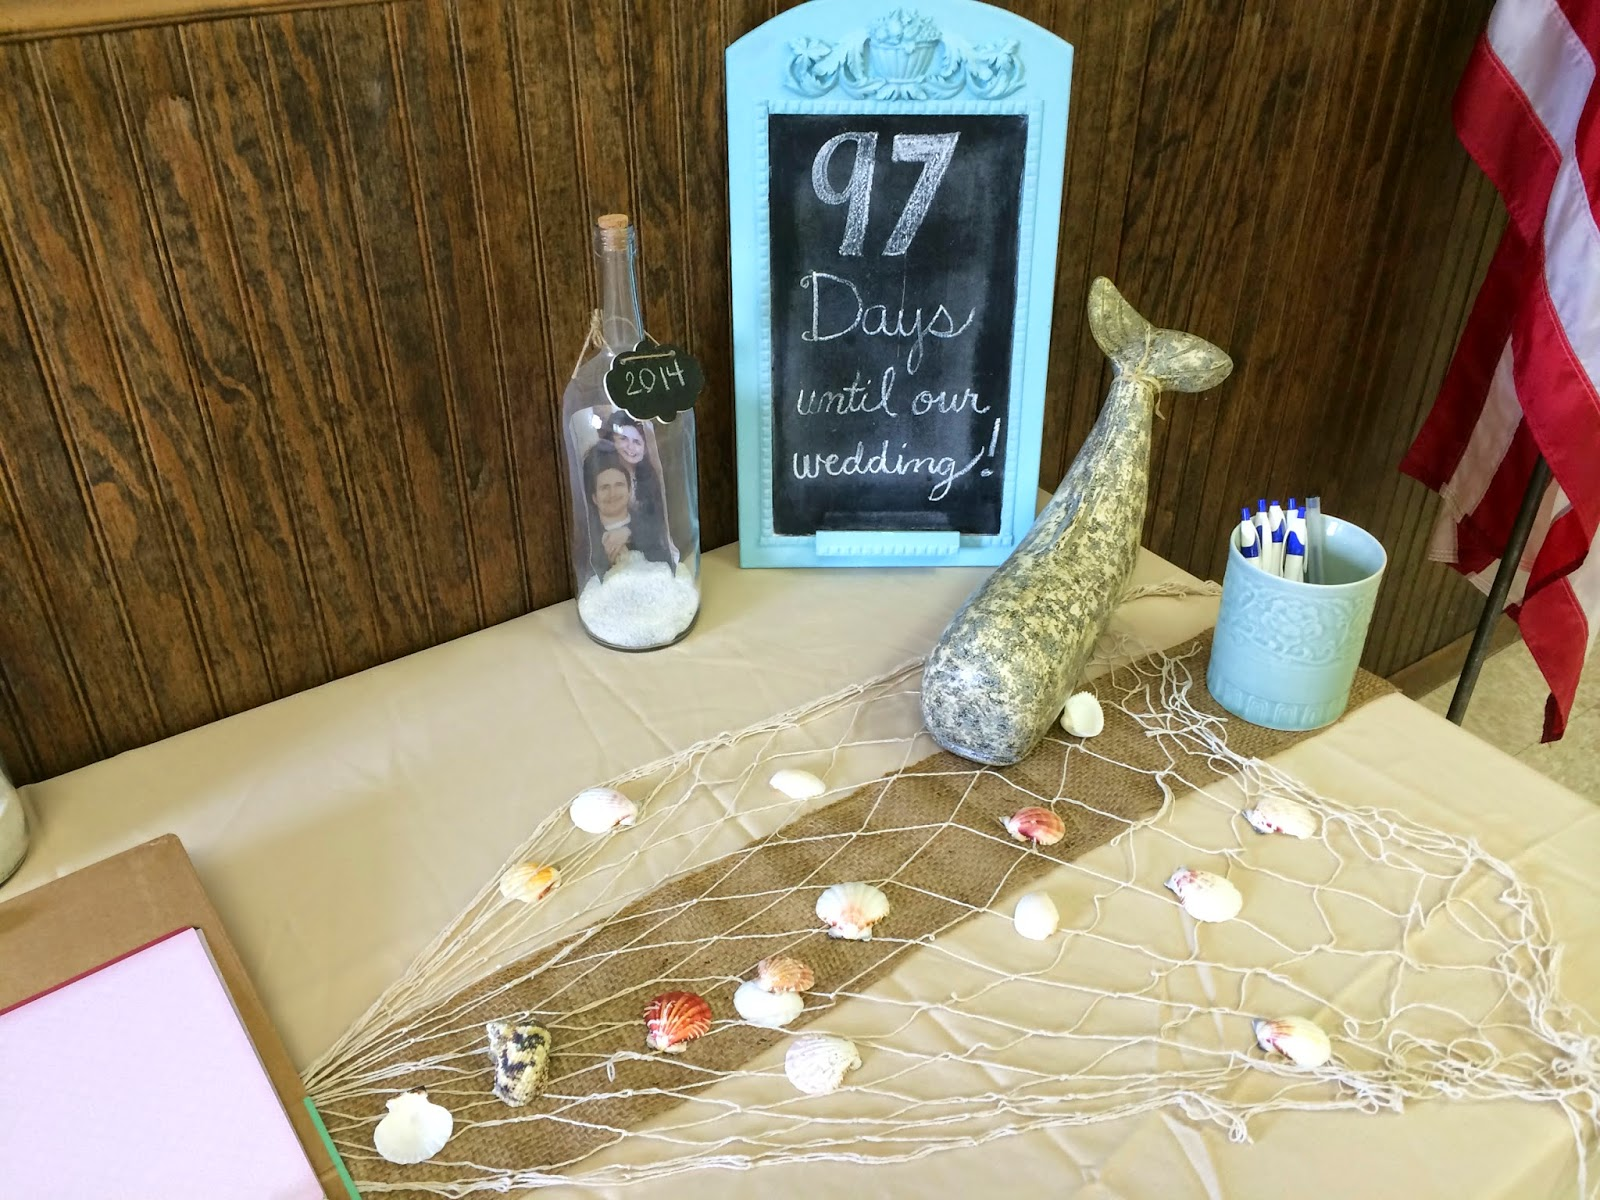 My Favorite Things: Jess's Beach Themed Wedding Shower